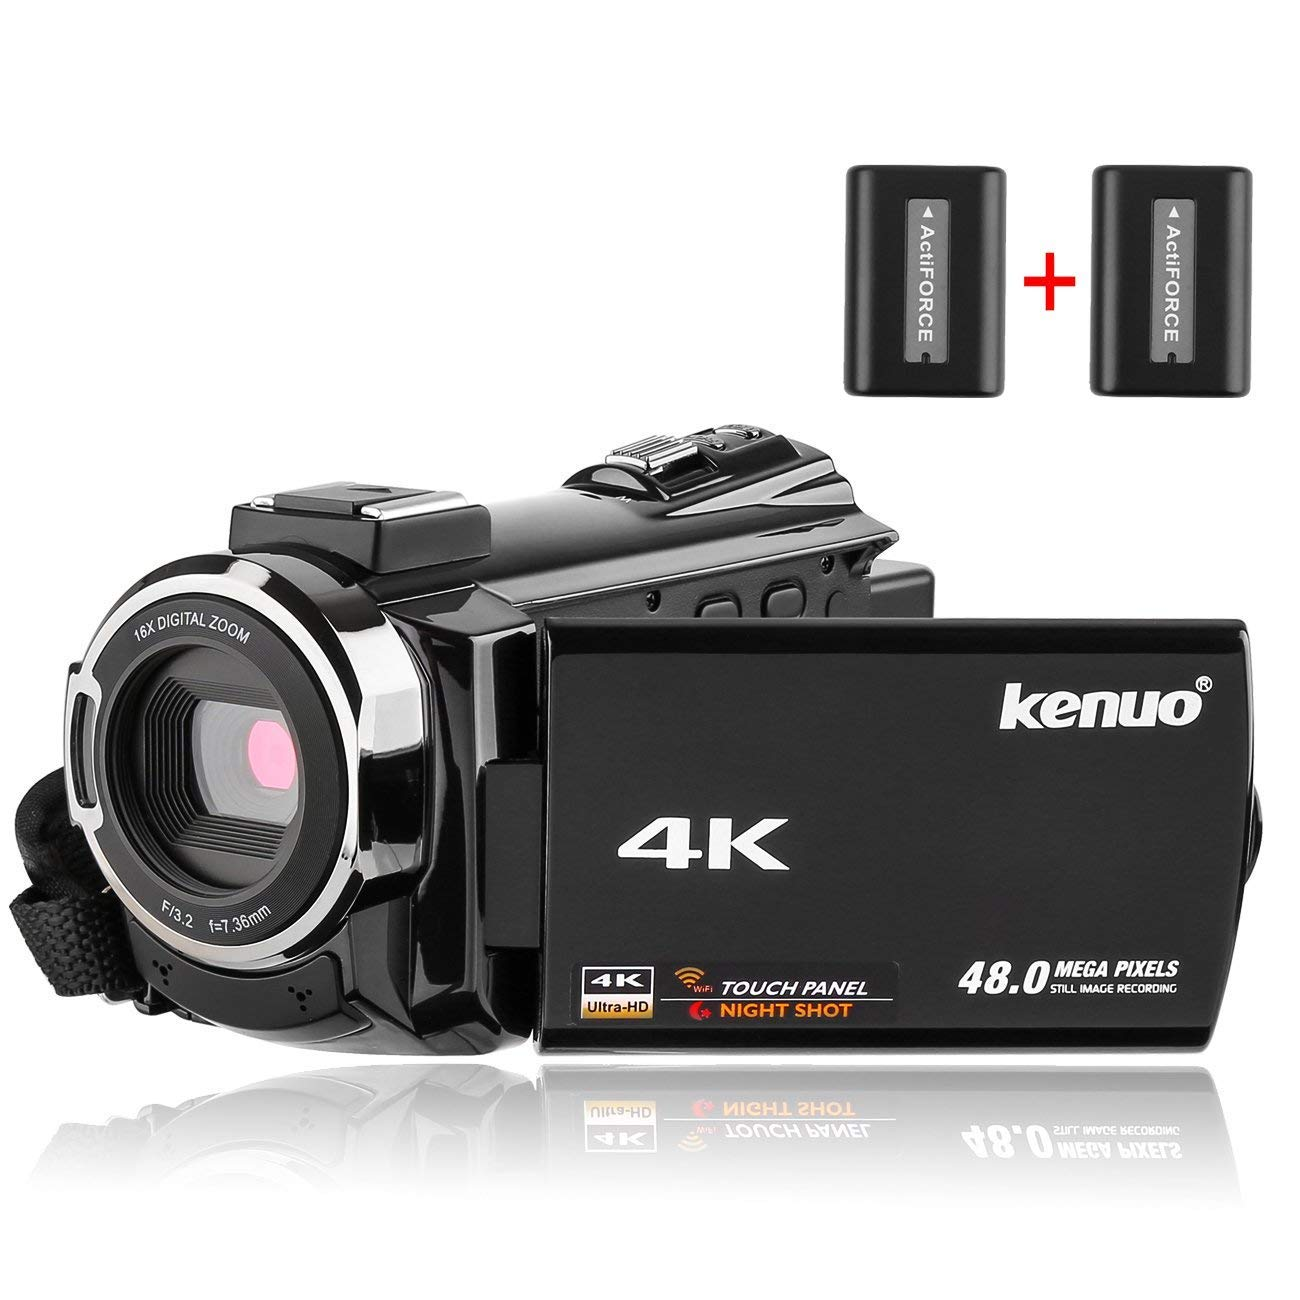 Video Camera Camcorder 4K Kenuo Ultra HD 60FPS Digital WiFi Camera, 48.0MP 3.0 inch Touch Screen, IR Night Vision, 16X Digital Zoom, with External Microphone and Wide Angle Lens, 2 Batteries ShenZhenShiMeiErJiaKeJiYouXianGongSi 524K